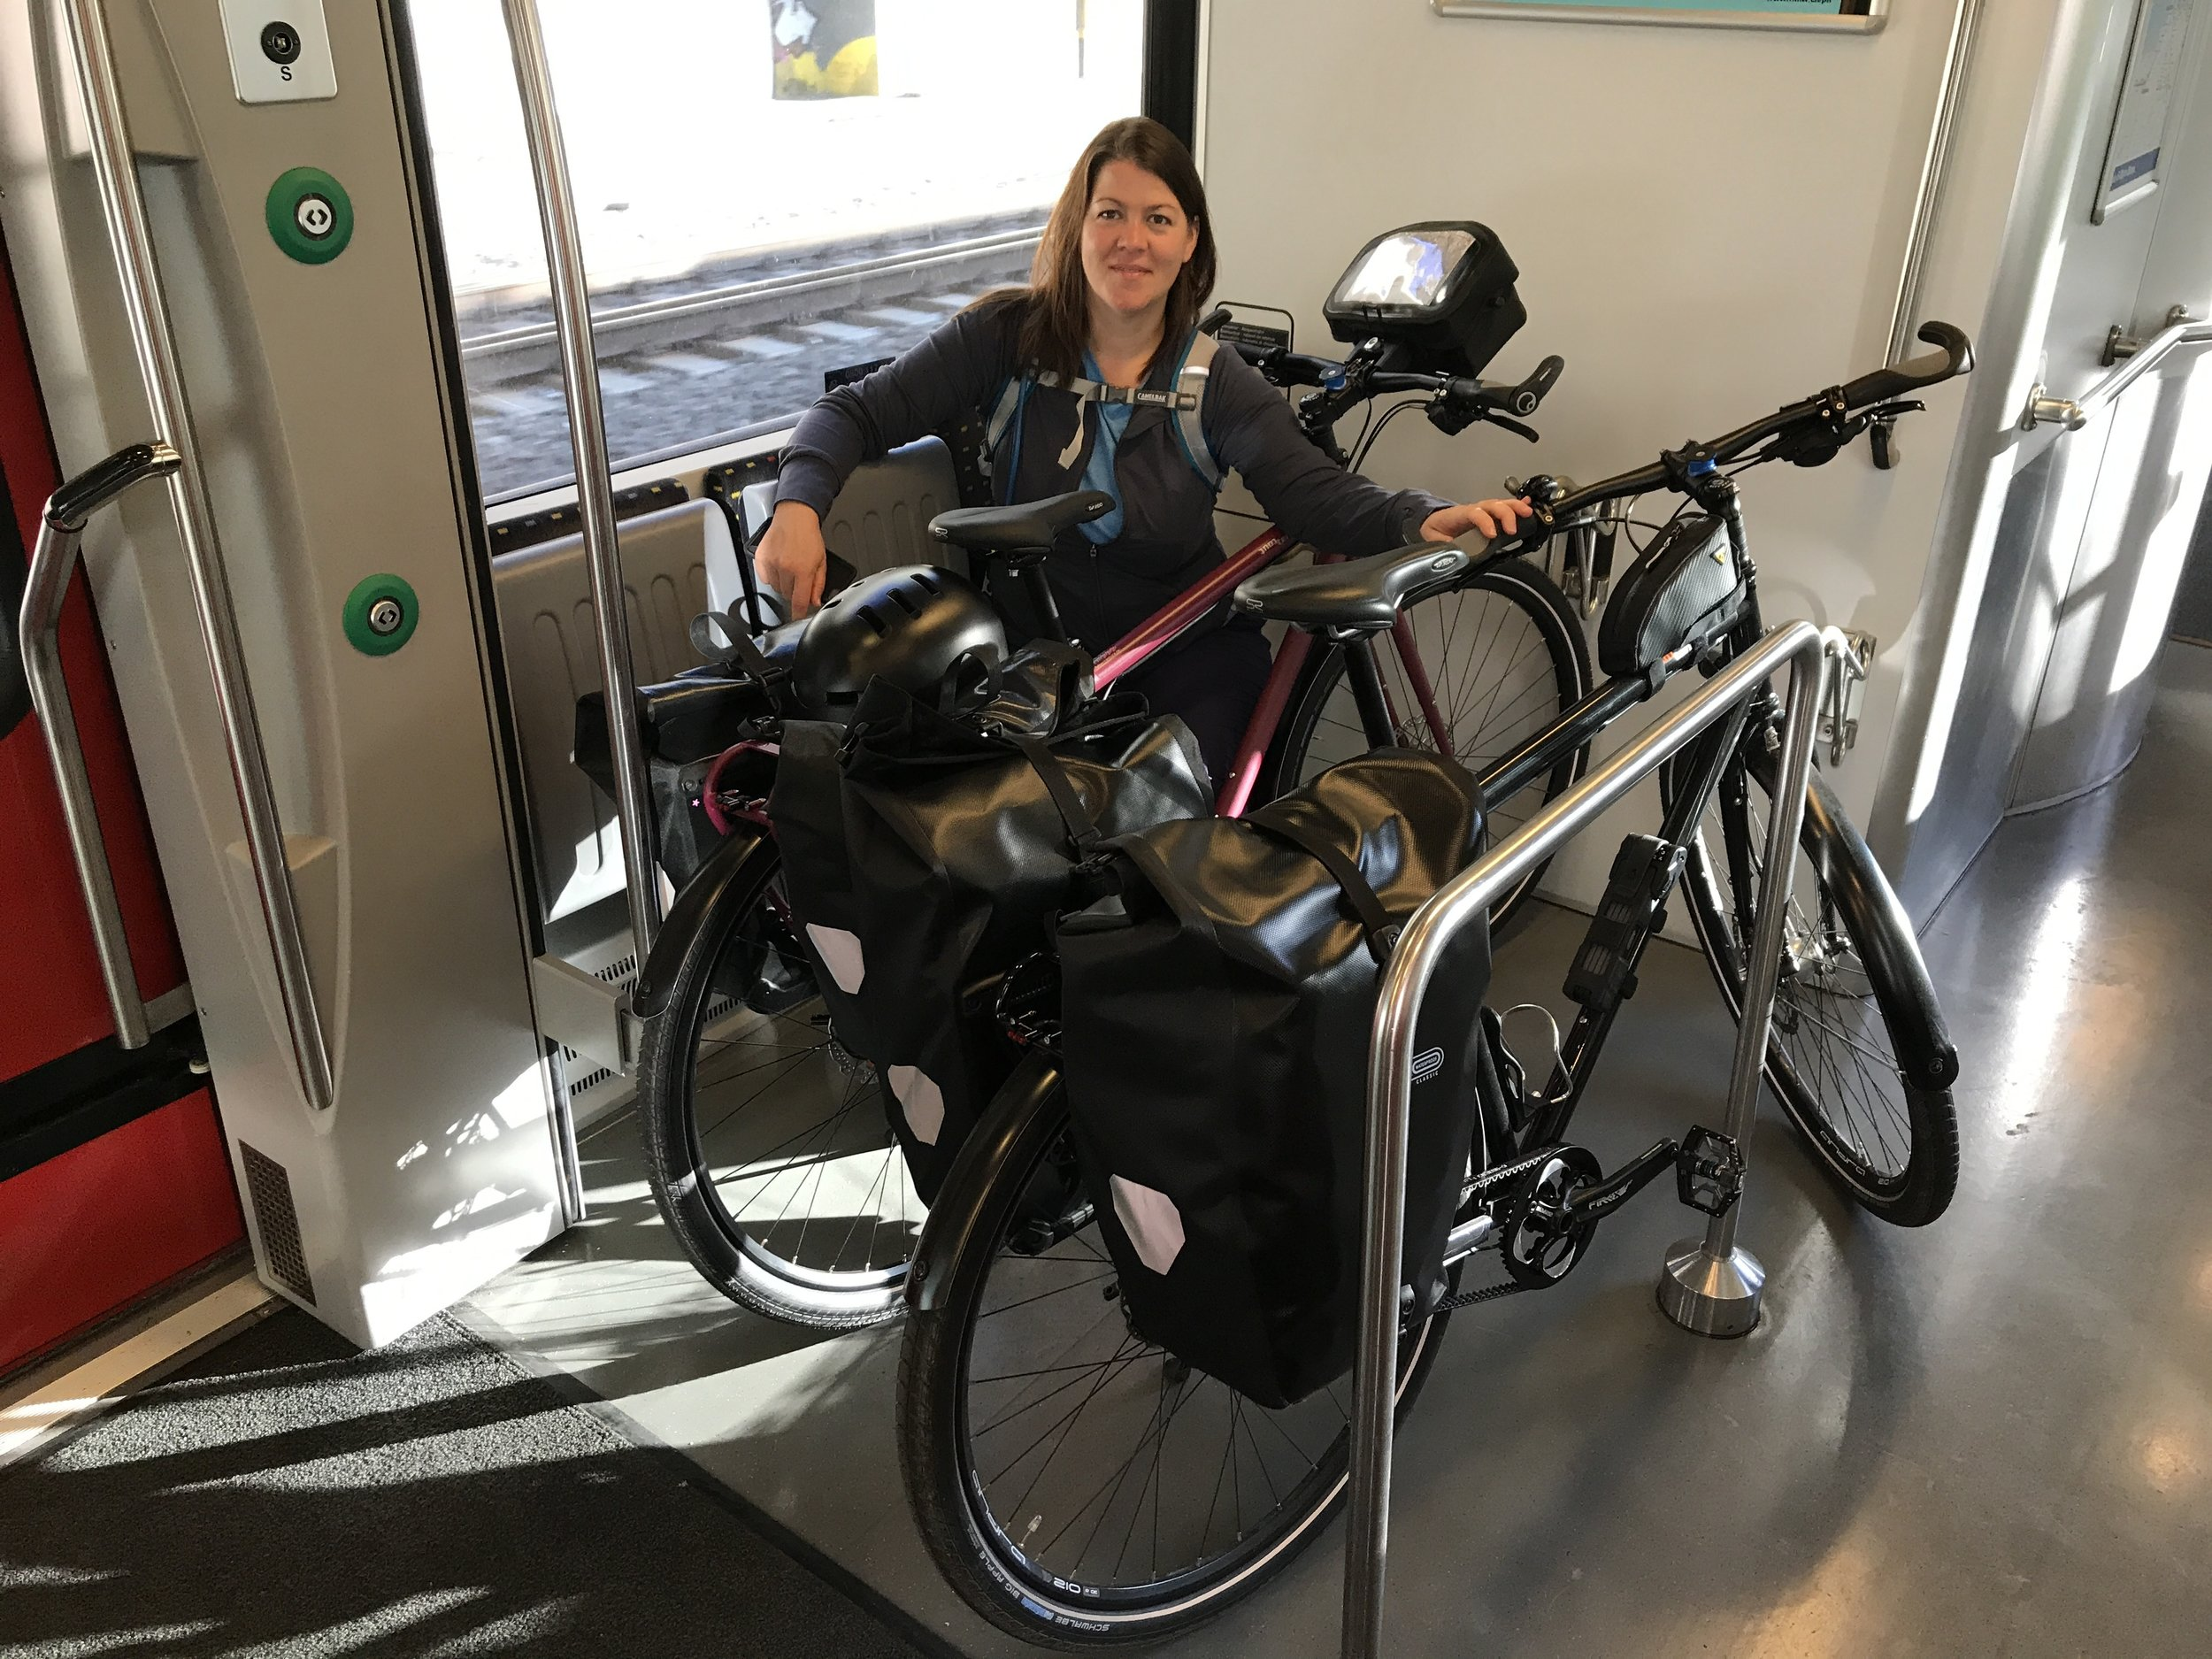 Transporting Bikes - Luckily there is space on the train but it's not always so easy!